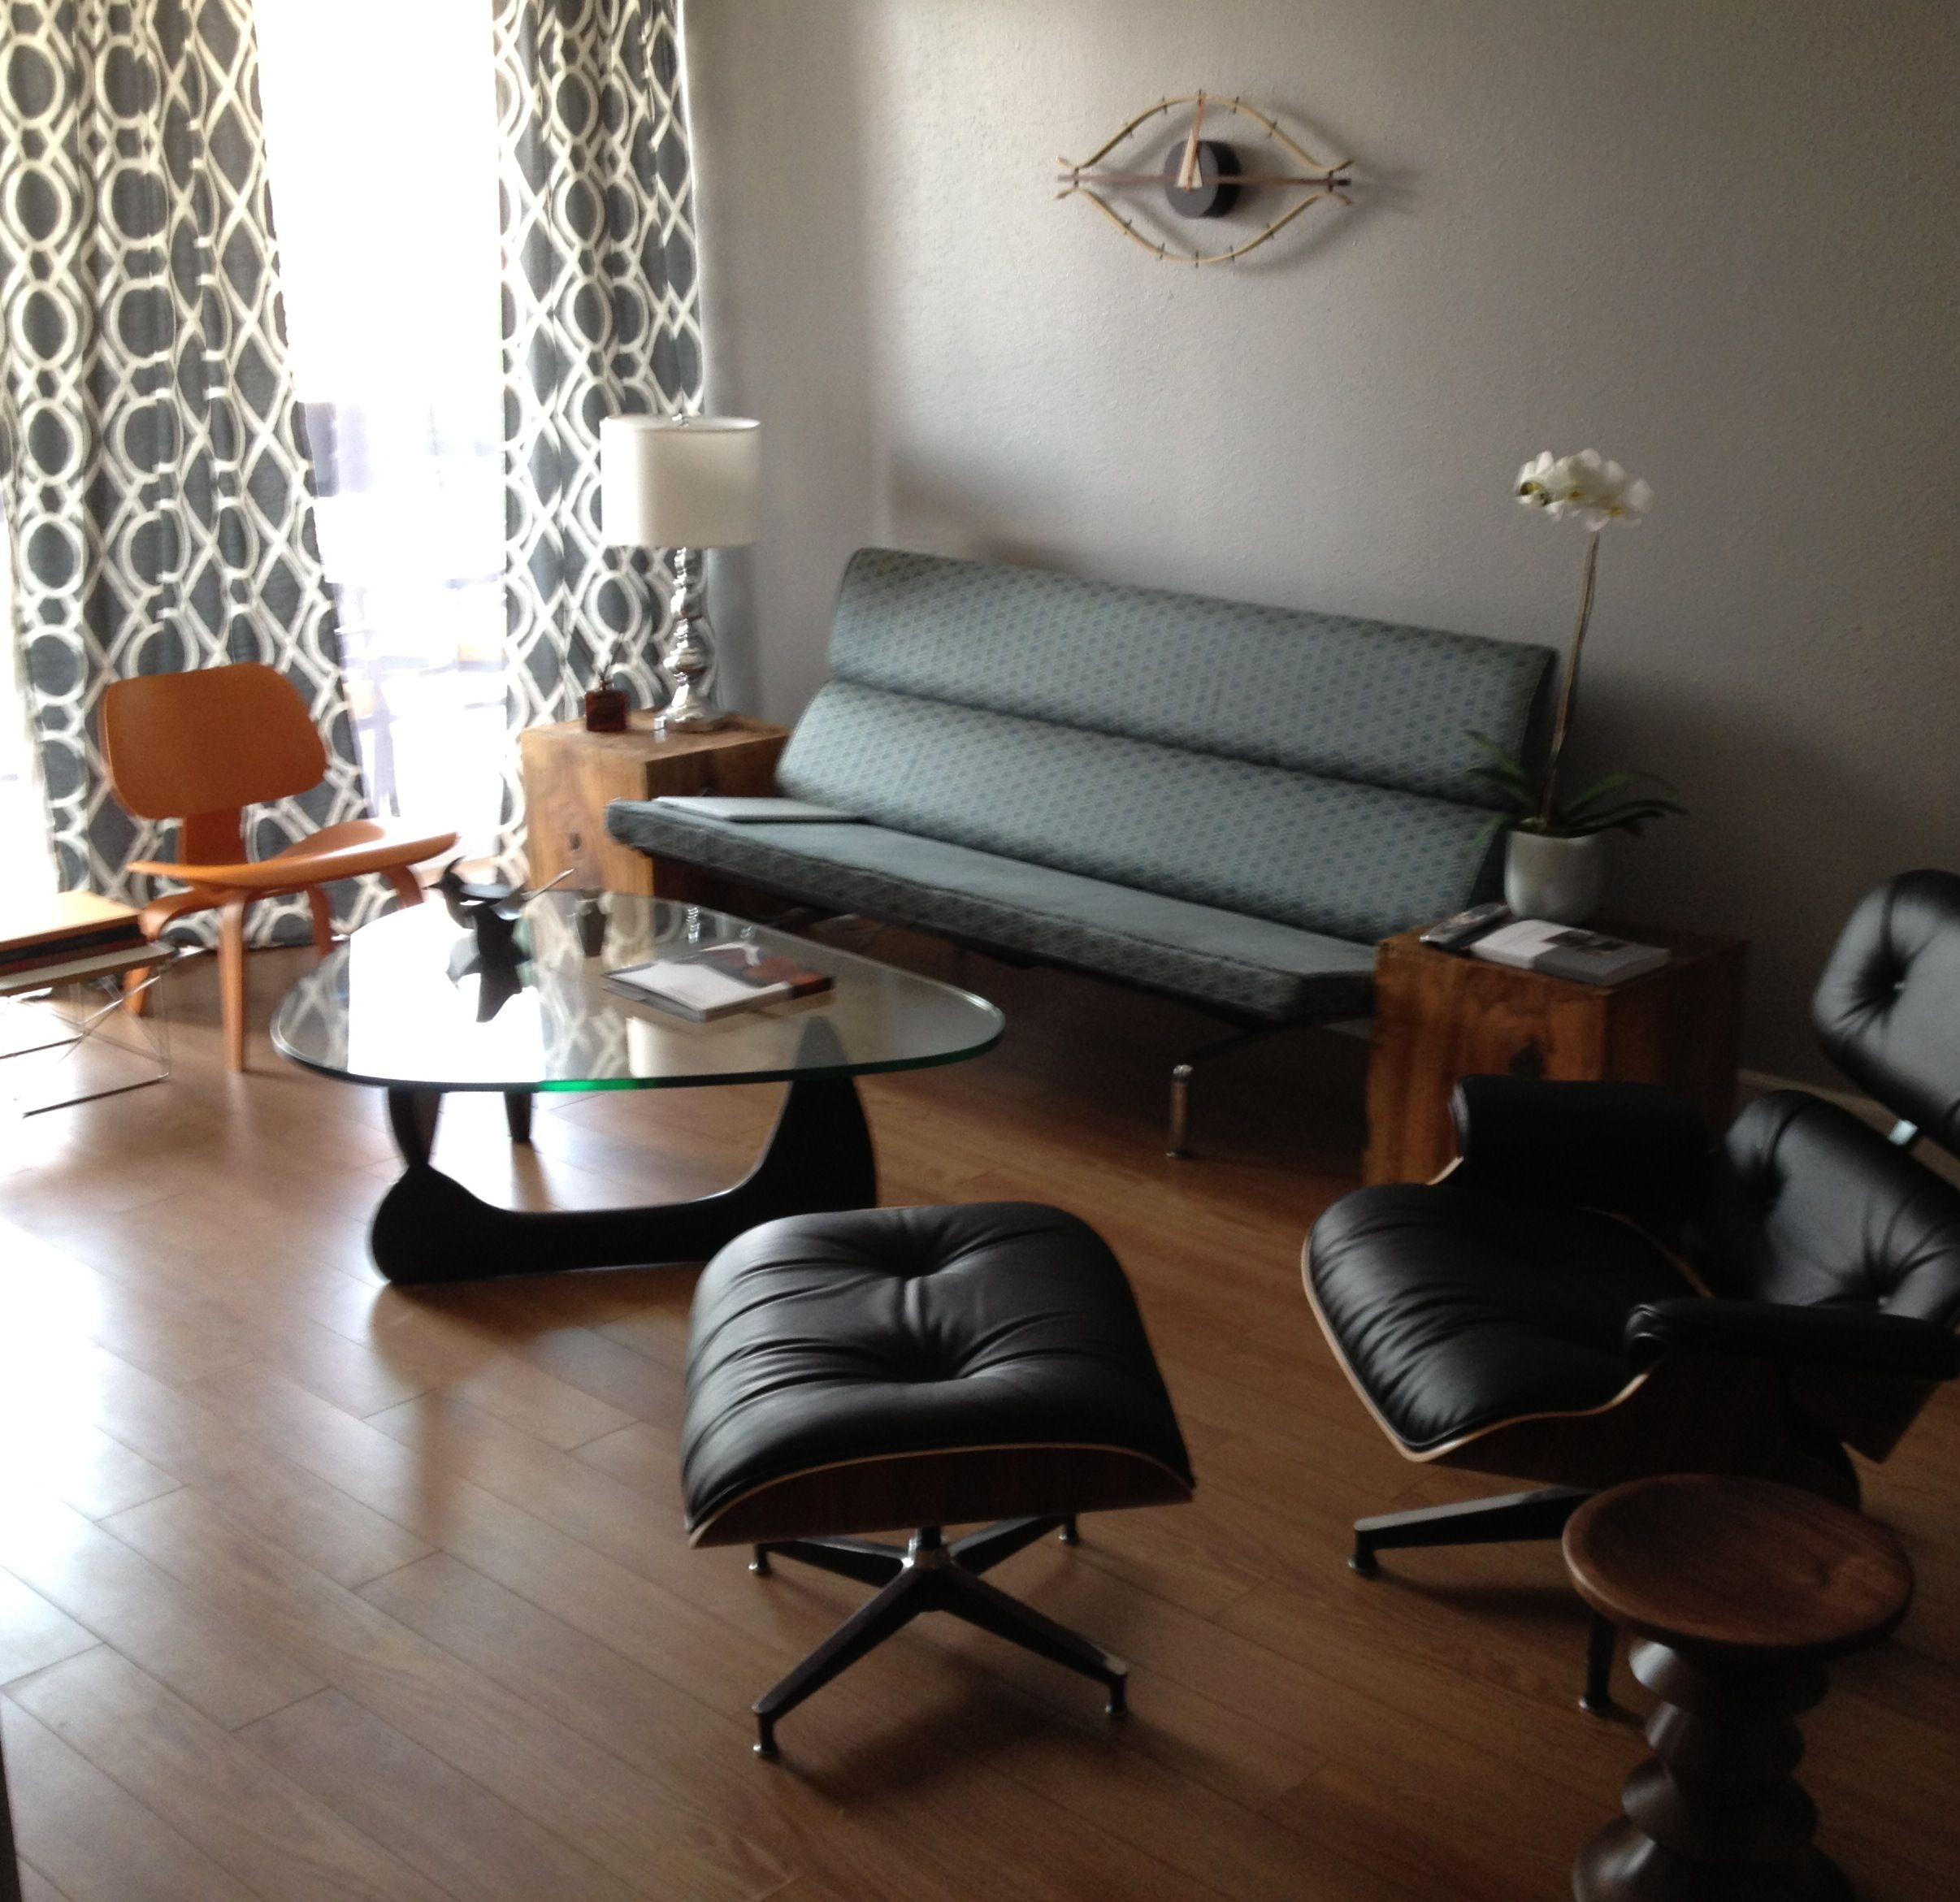 Eames Sofa Compact, Orange LCW, Eames Lounge Chair, Noguchi Table.